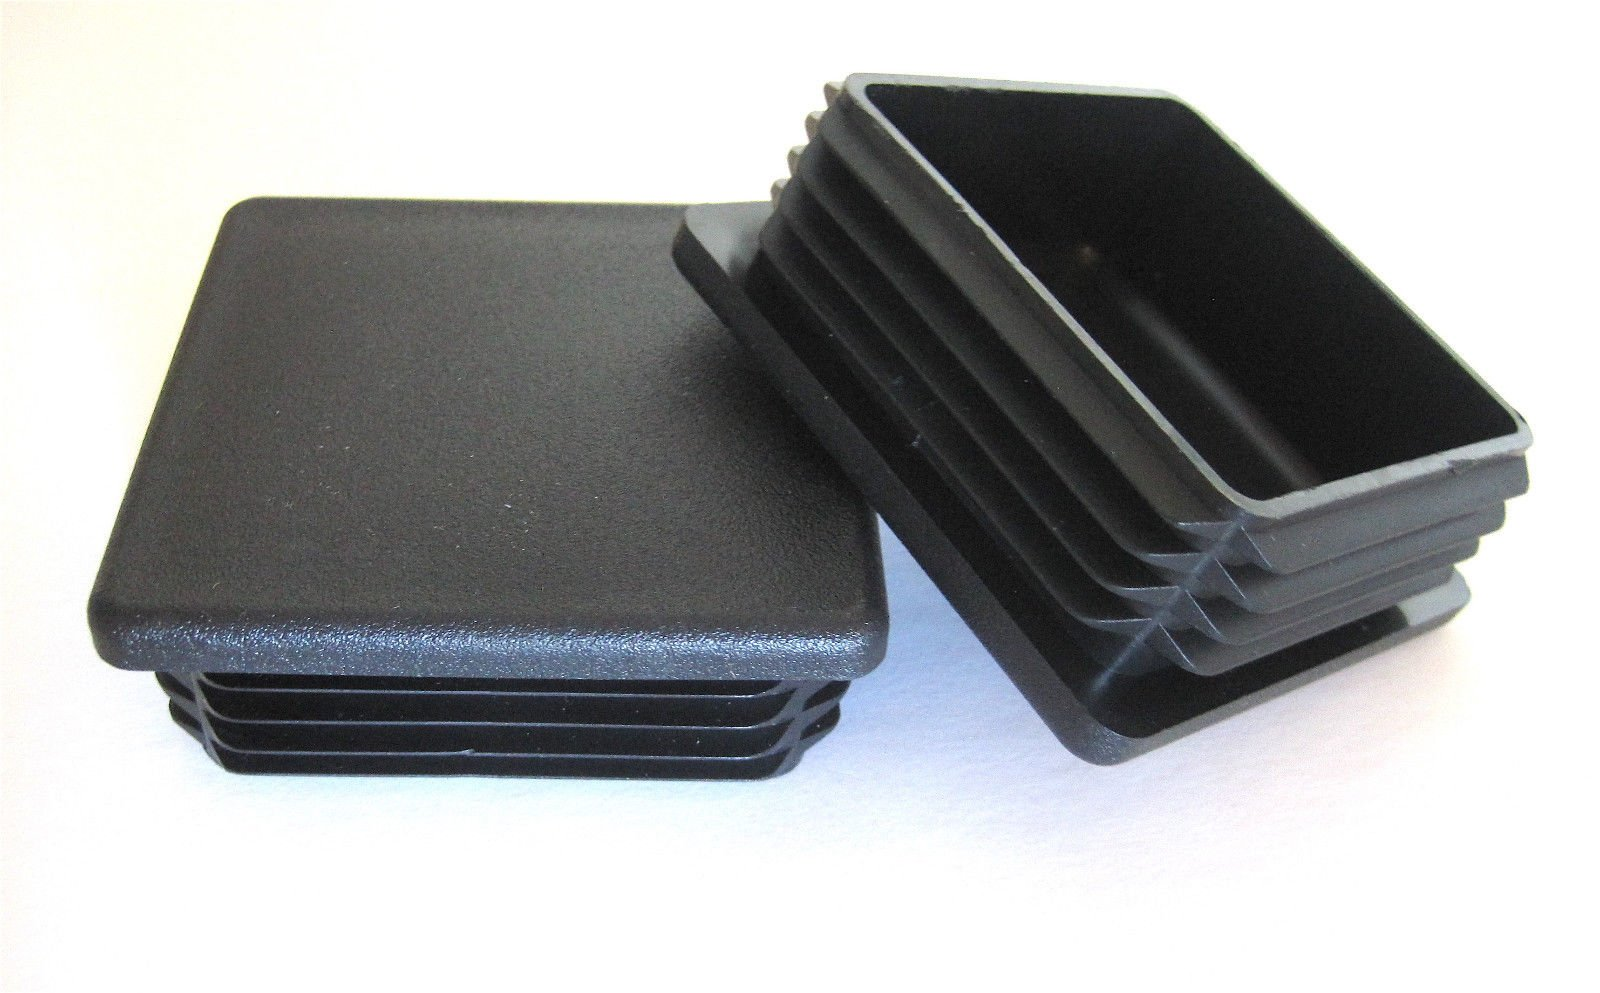 50 Pack: 3'' Black Square Plastic Plug, 8-15 Gauge - fits pipe with 3 Inch OD (Outer Diameter) - Heavy Duty - Chair Table Stool Leg Cap, Glide Insert, Tube Hole, Post Finishing Plugs by Prescott Plastics